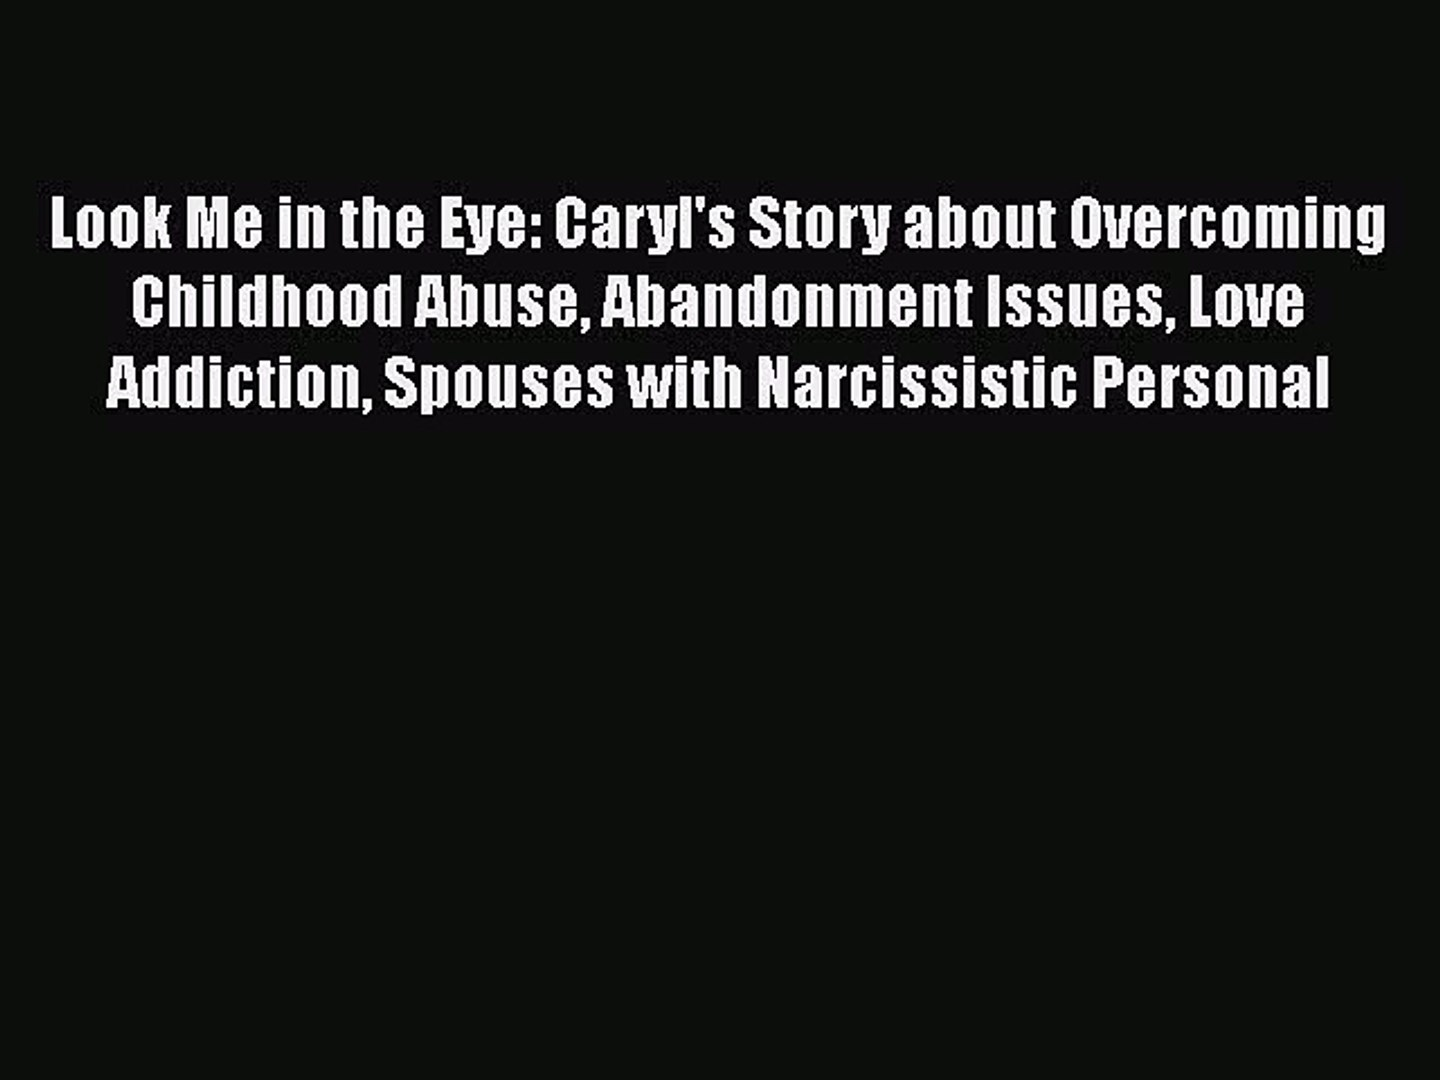 Download Look Me In The Eye Caryl S Story About Overcoming Childhood Abuse Abandonment Issues Video Dailymotion